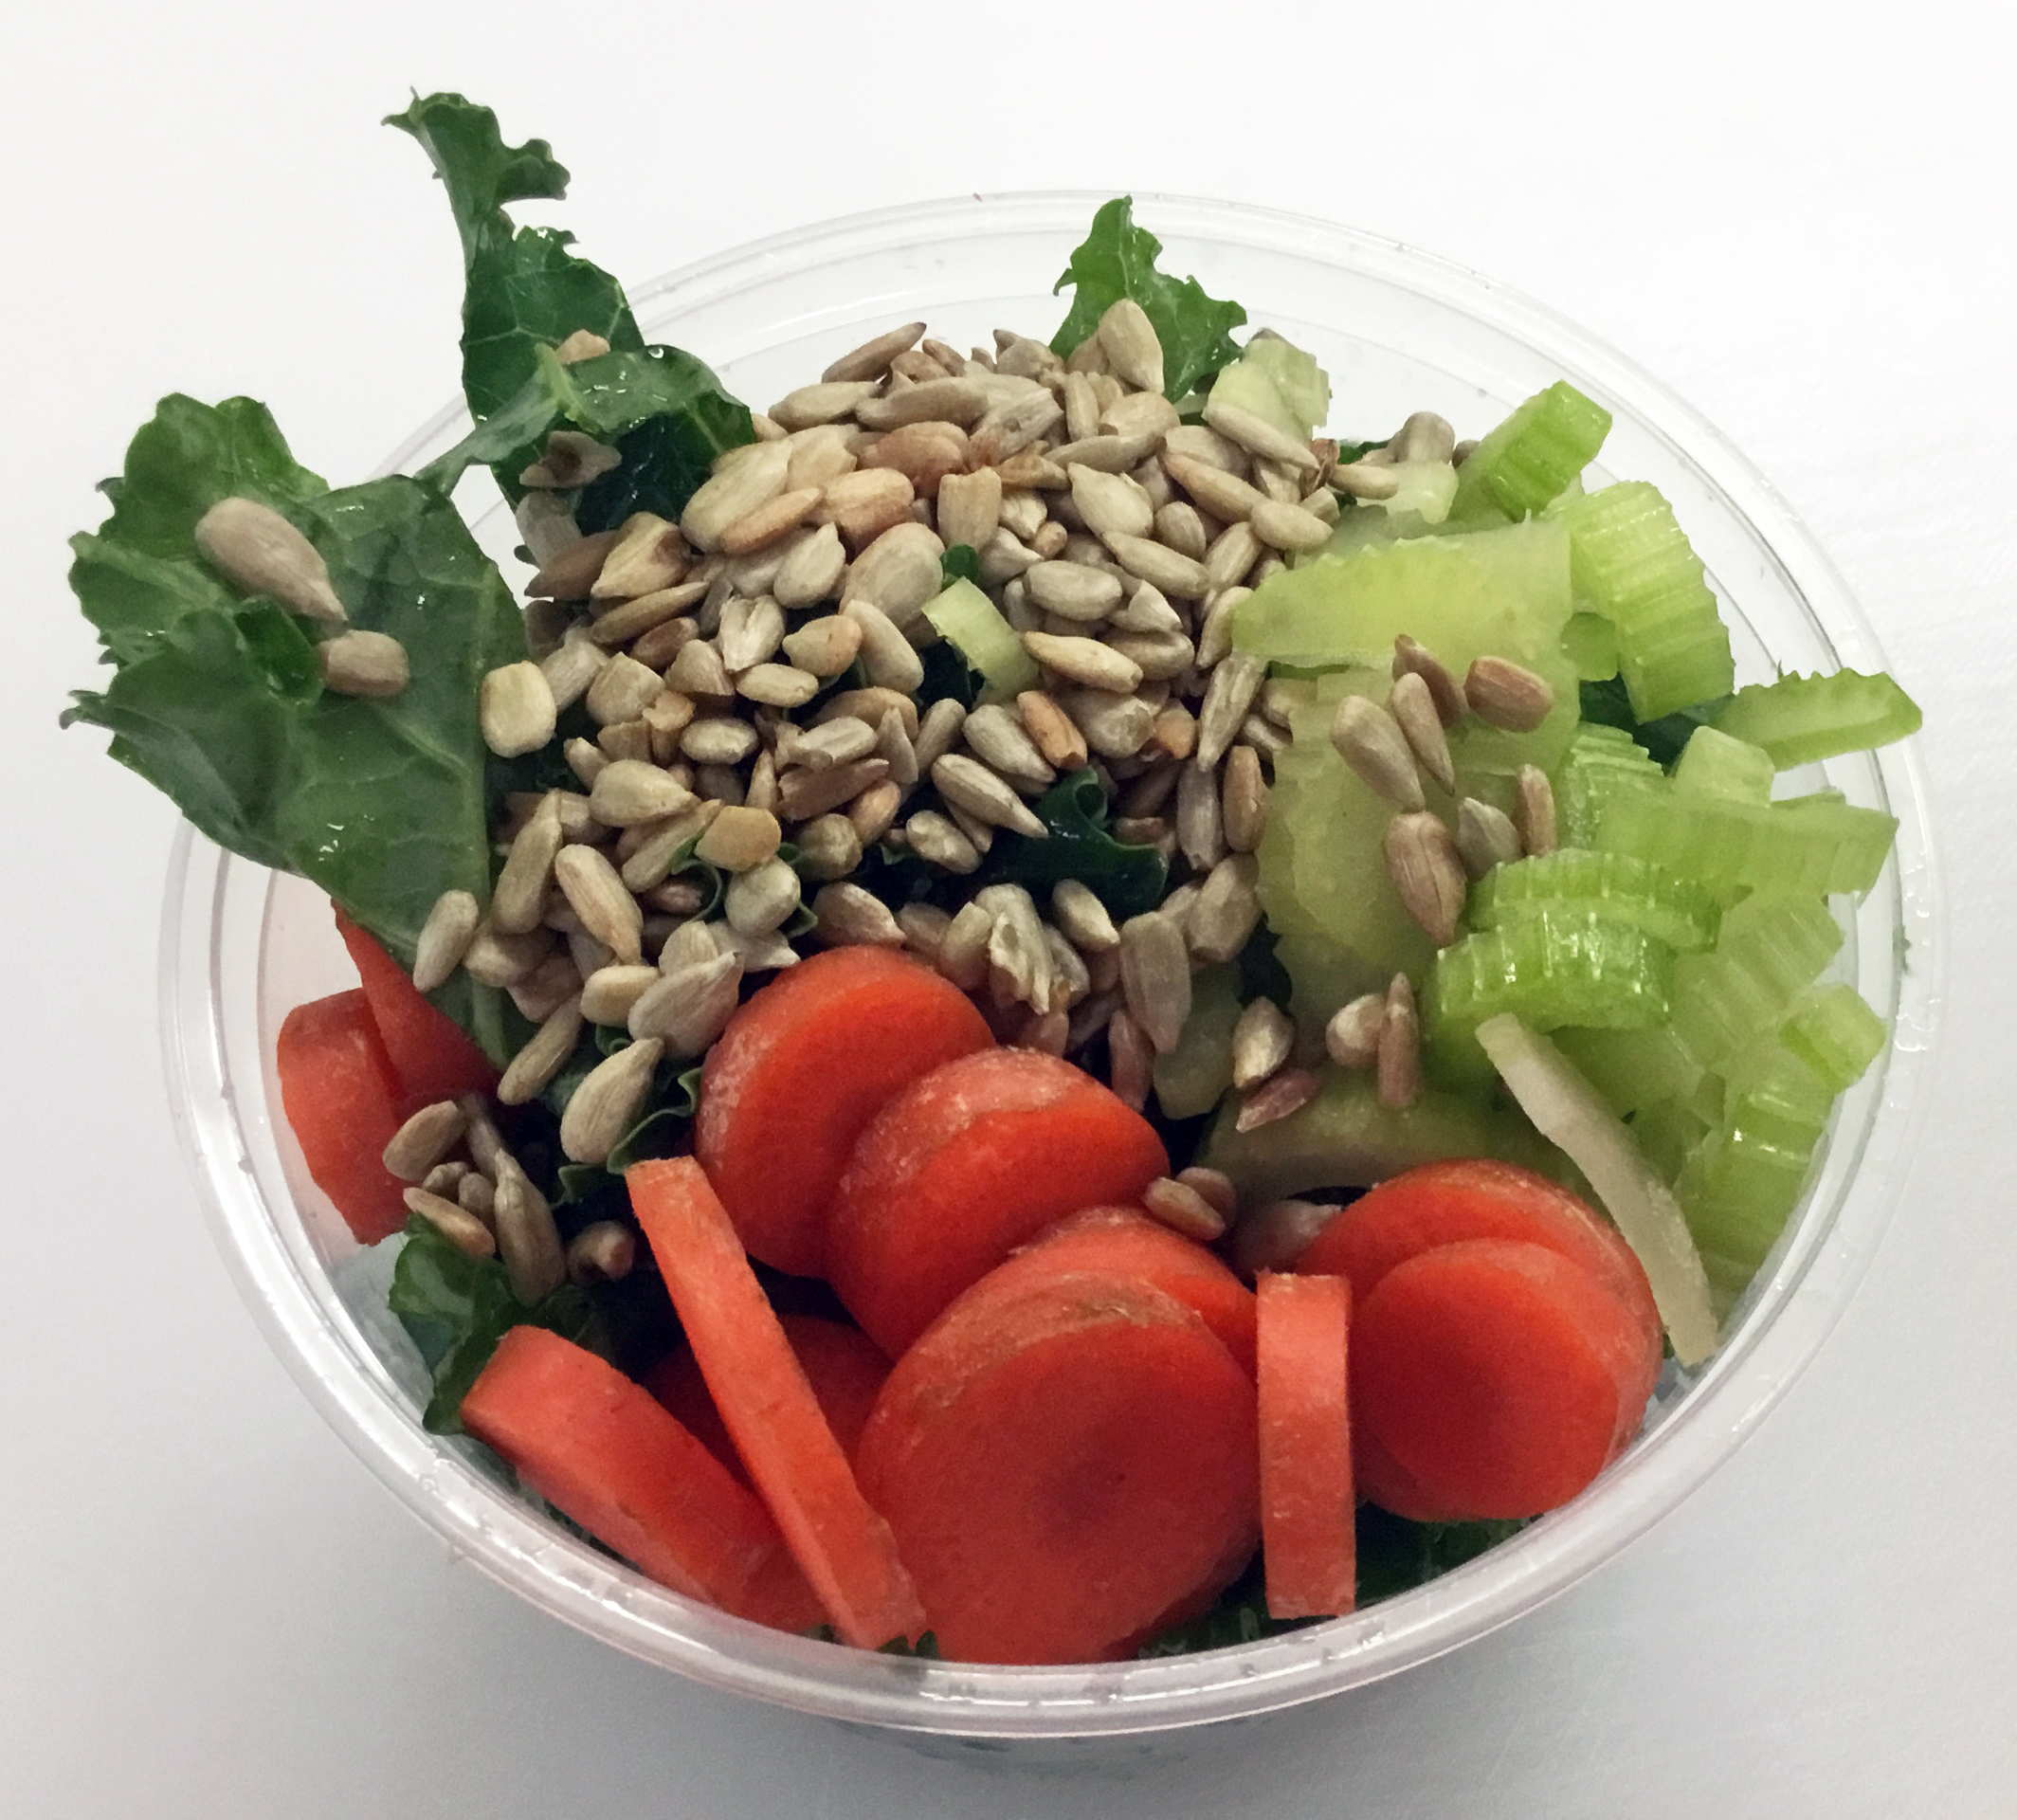 Kale with carrots, celery and toasted sunflower seeds.